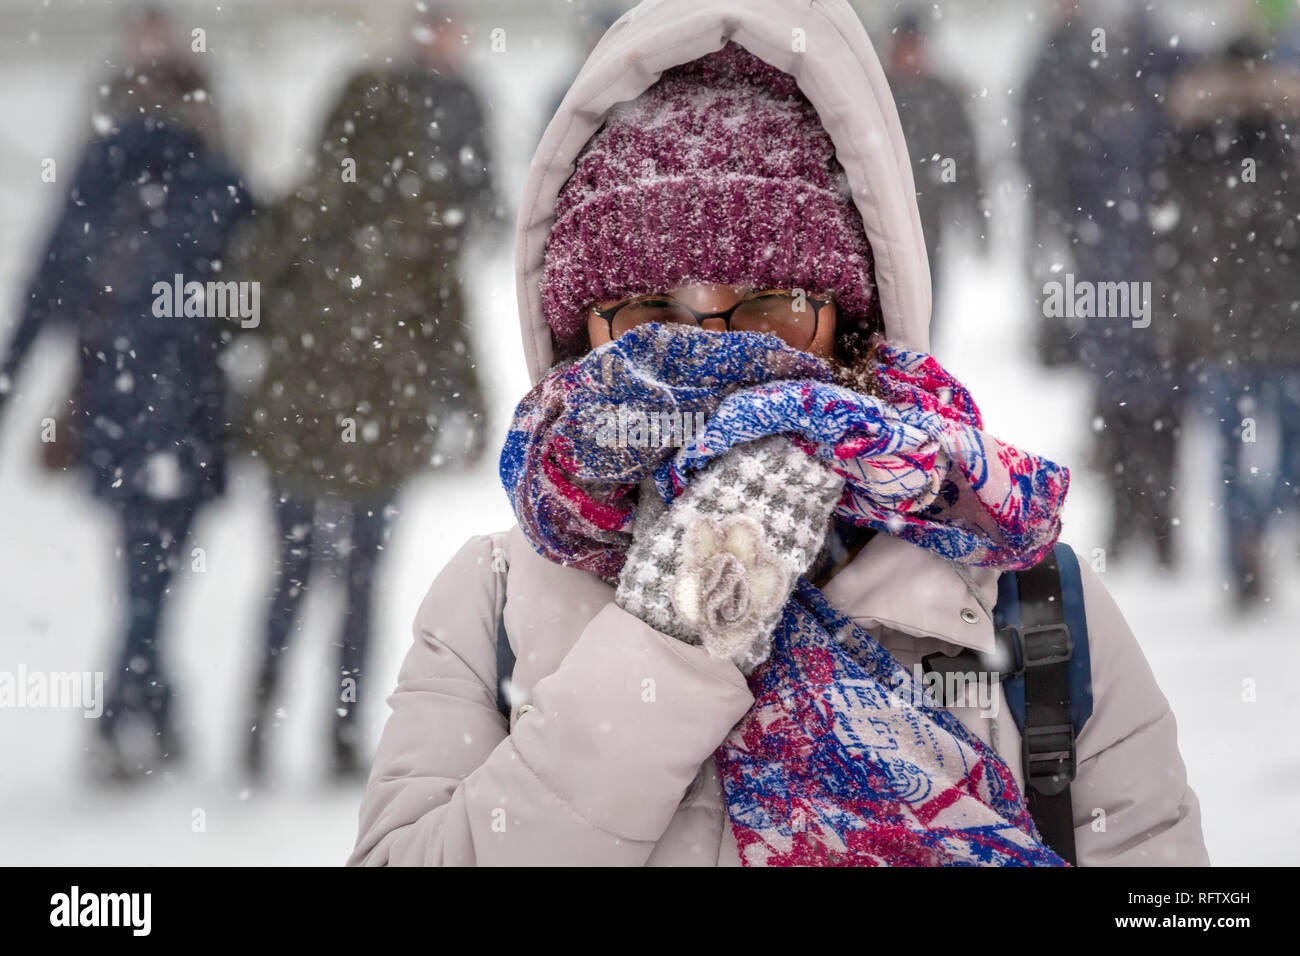 People walking in central Moscow during a heavy snowfall, Russia - Stock Image